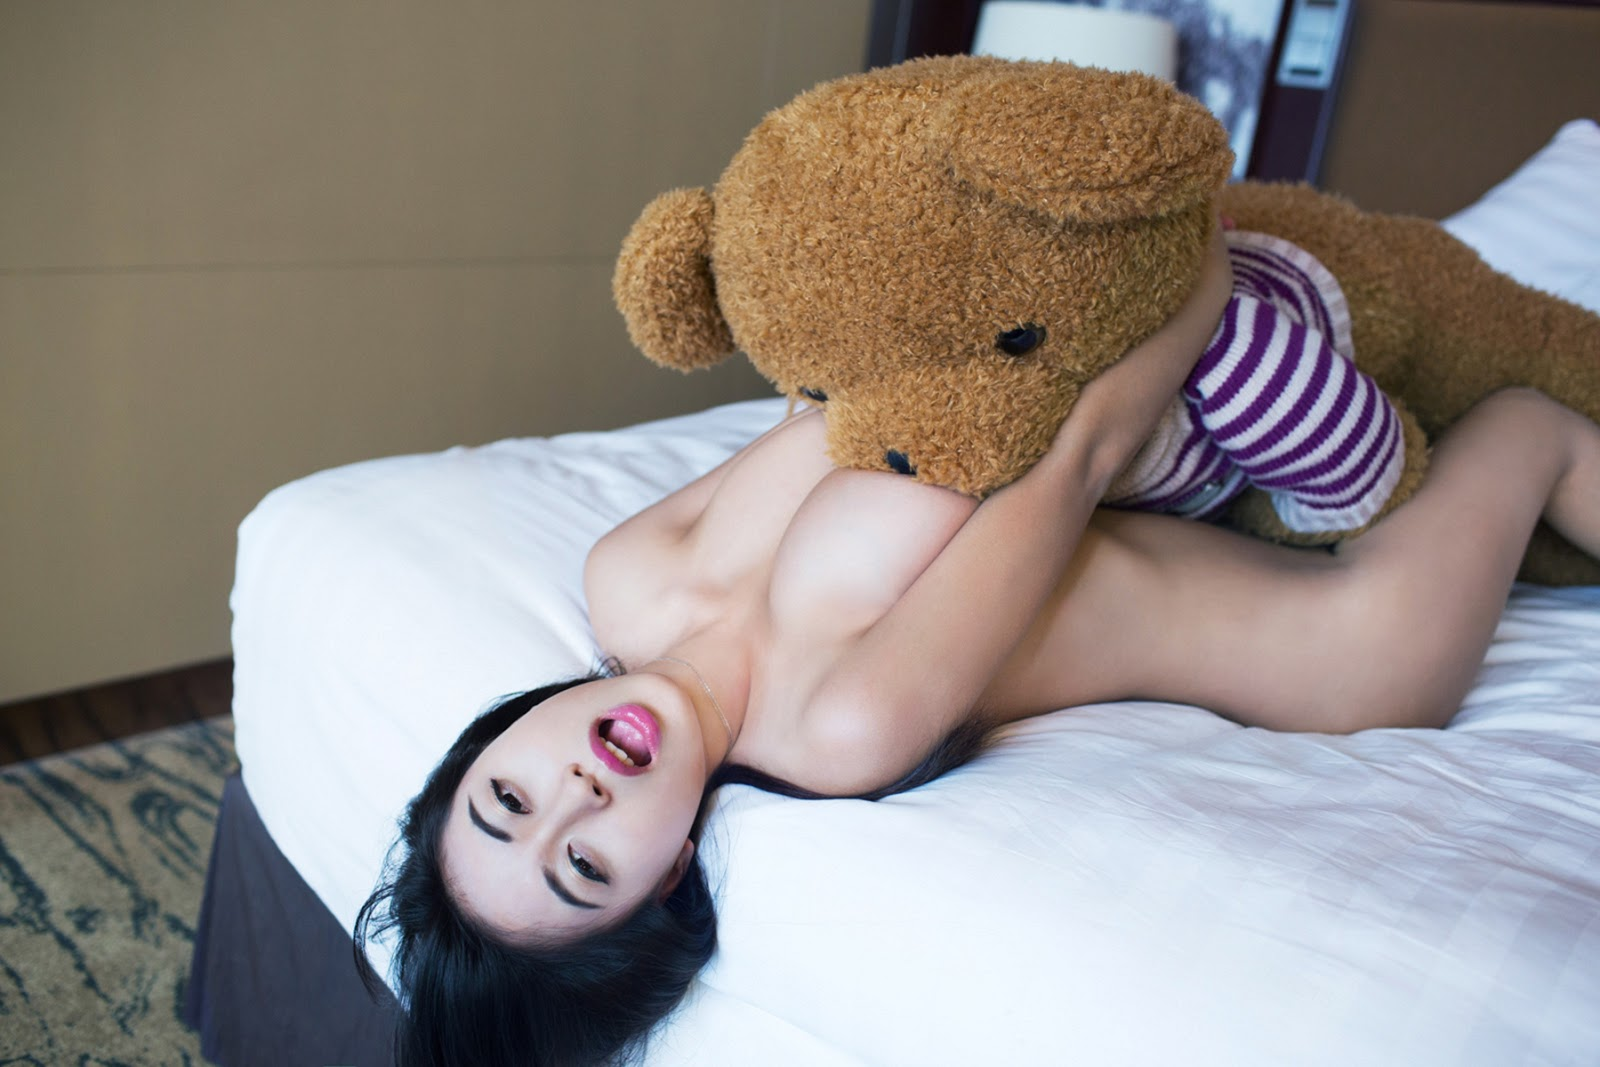 Girl humping teddy bear